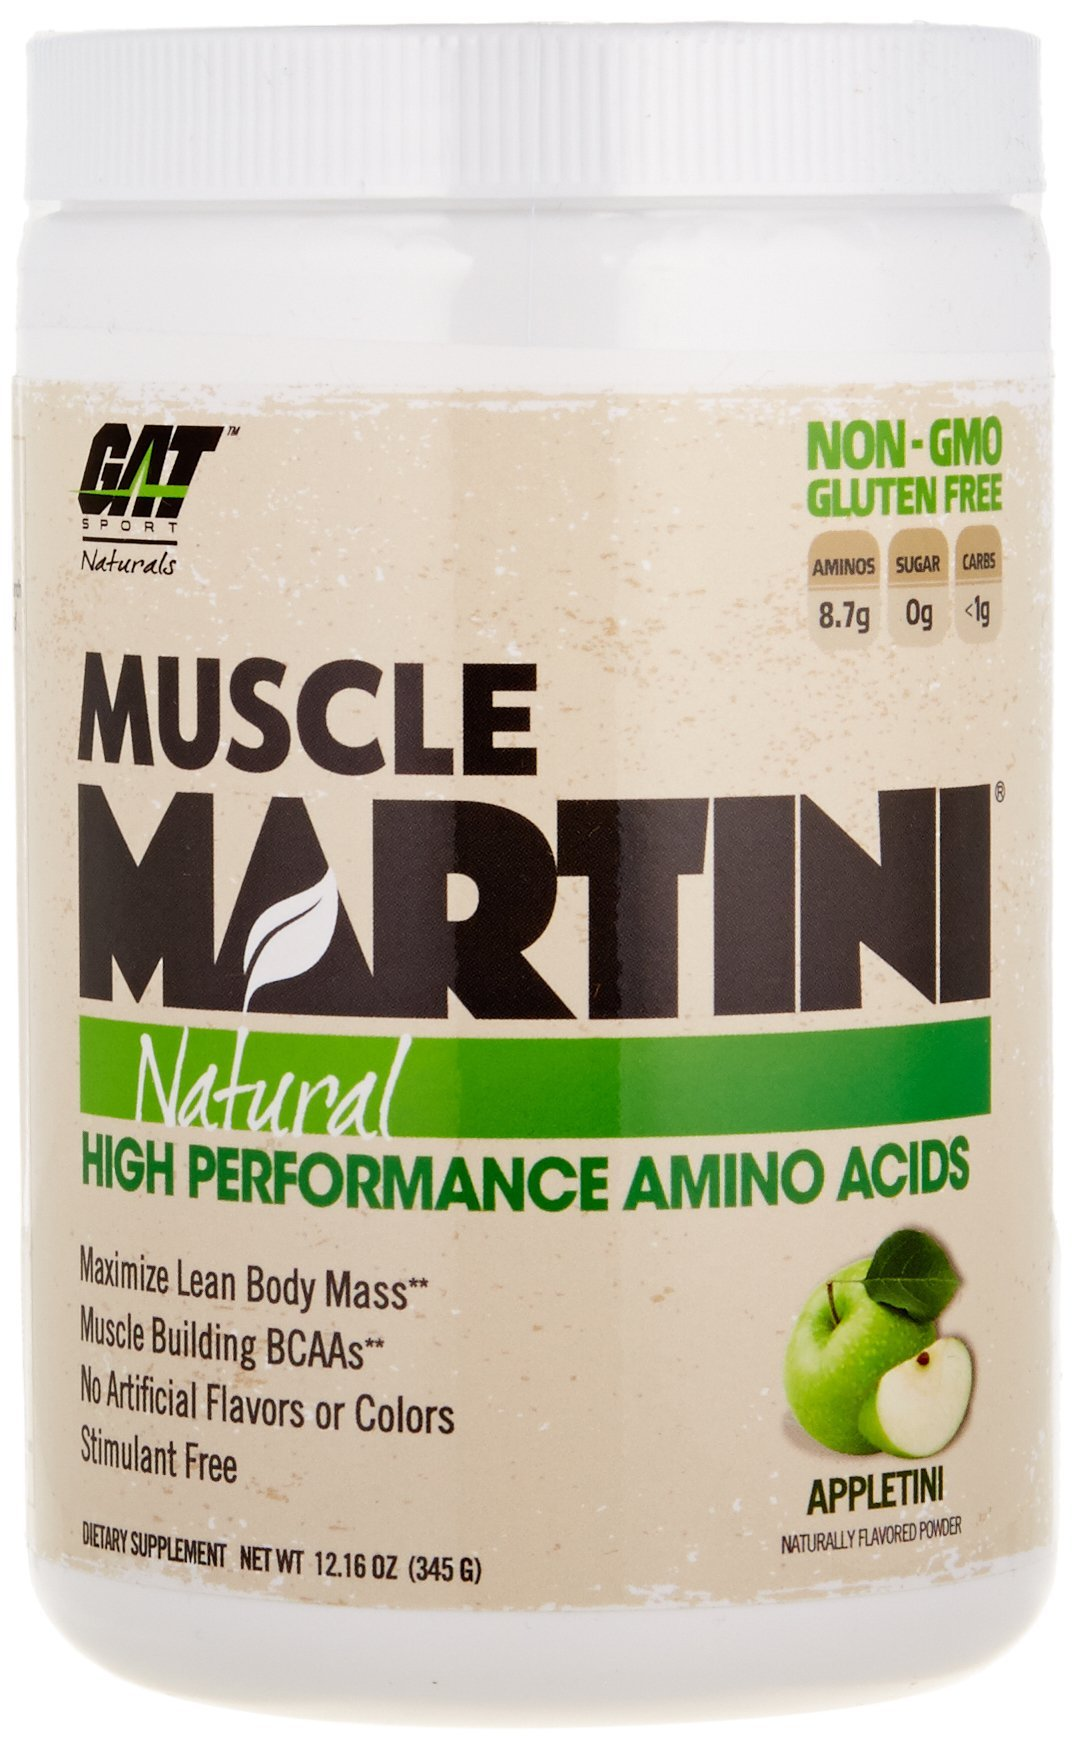 GAT Muscle Martini Natural BCAA Formula, High Performance Stimulant Free Muscle Building Amino Acids with No Artificial Flavors or Colors, Appletini, 30 Sv